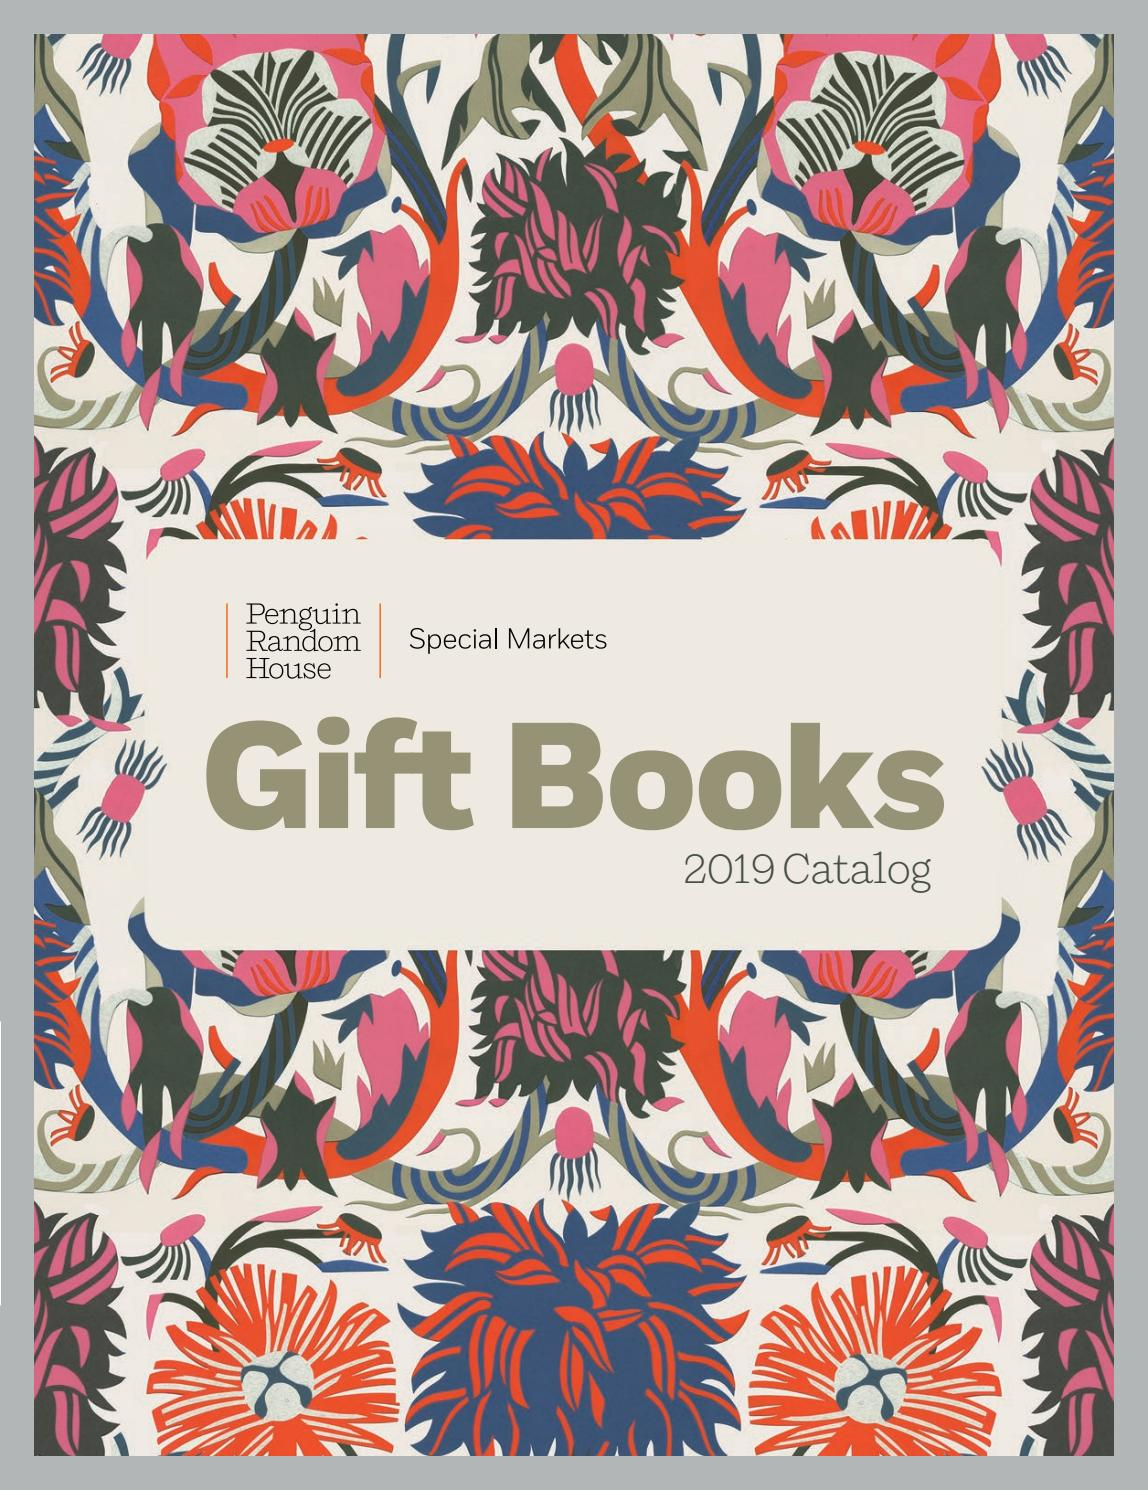 brand new f3bbd 33ad0 Penguin Random House Gift Books 2019 Catalog by Penguin Random House  Special Markets - issuu